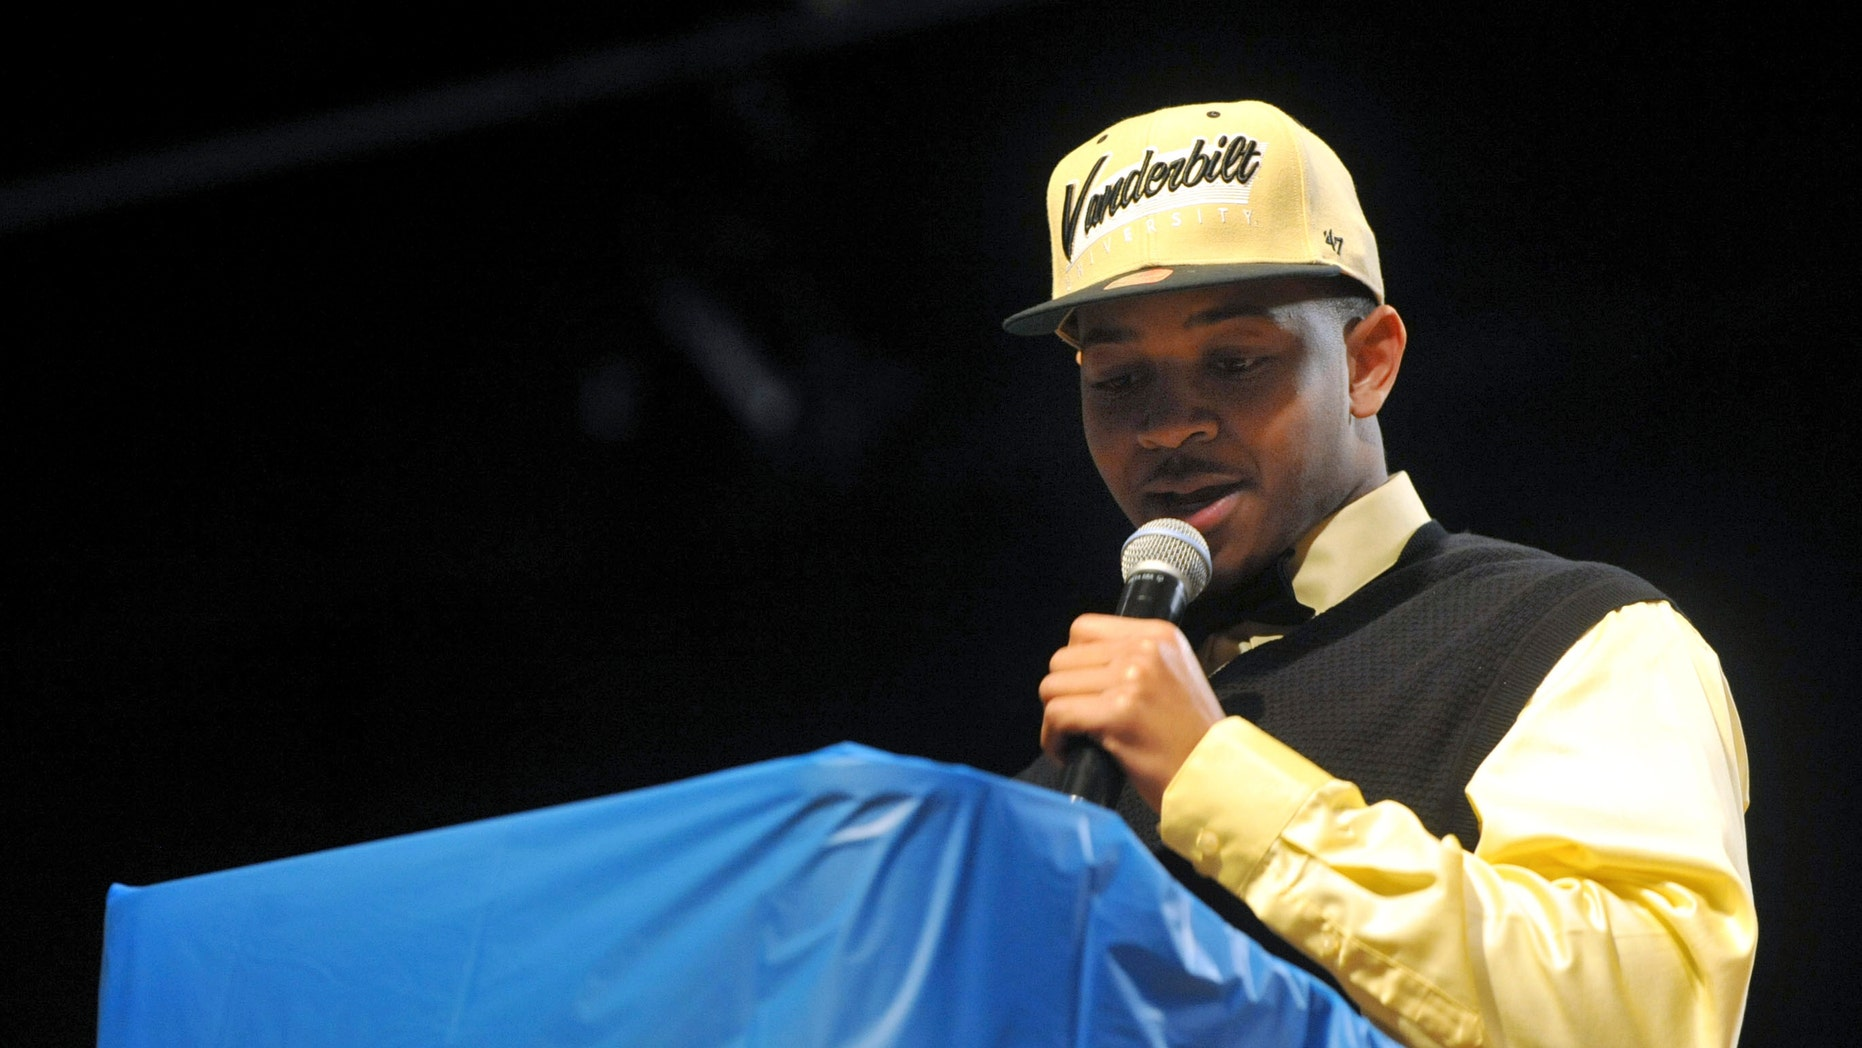 Stephenson High School's Dallas Rivers announces he will be attending Vanderbilt University and play football, Wednesday Feb. 5, 2014, in Stone Mountain, Ga. (AP Photo/Atlanta Journal-Constitution, Kent D. Johnson) GWINNETT OUT  MARIETTA OUT  LOCAL TV OUT (WXIA, WGCL, FOX 5)